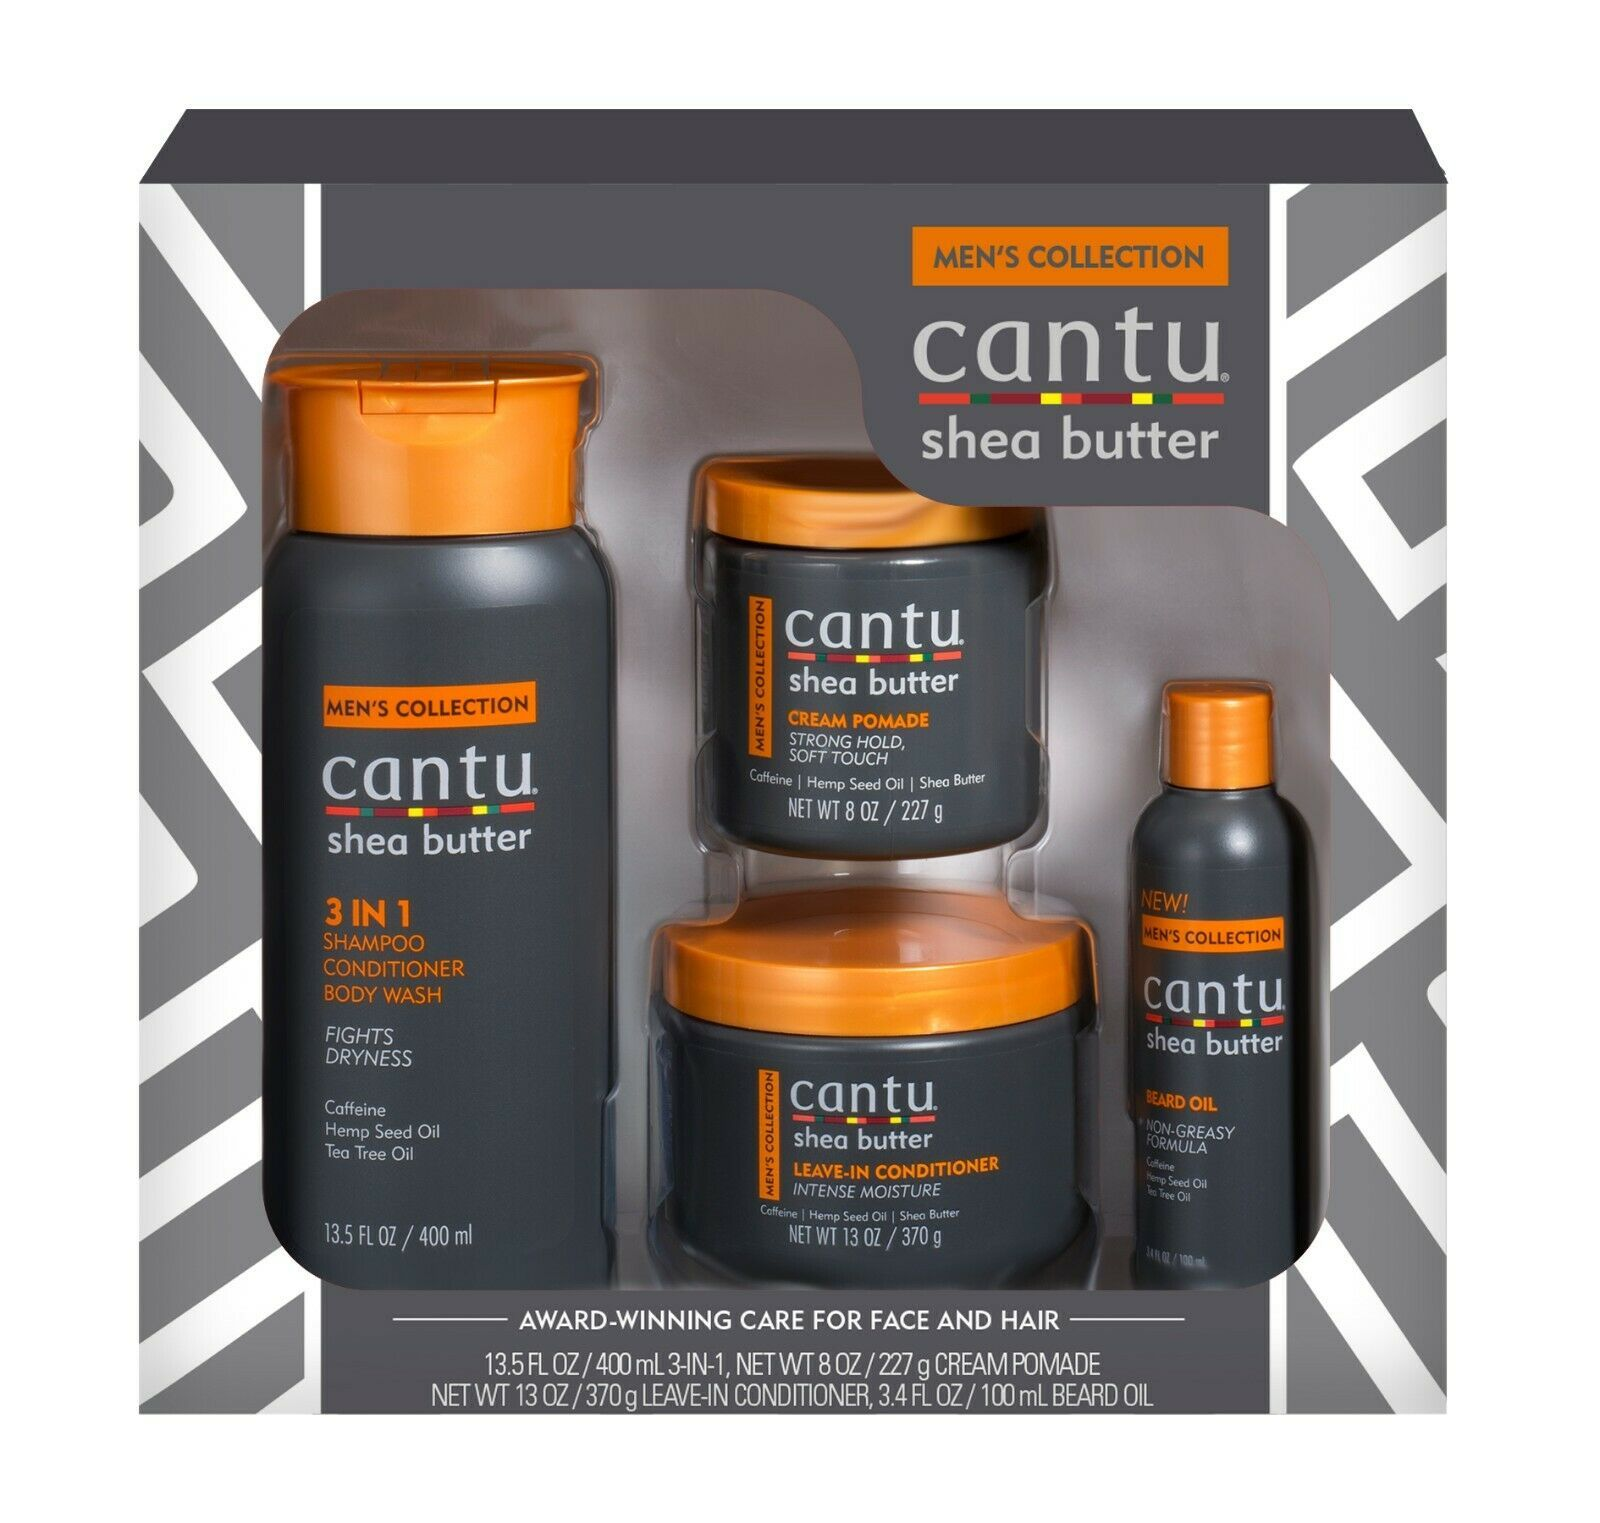 Primary image for Cantu Men's Collection Gift Set - Shampoo Pomade Beard Oil Leave-in Conditioner